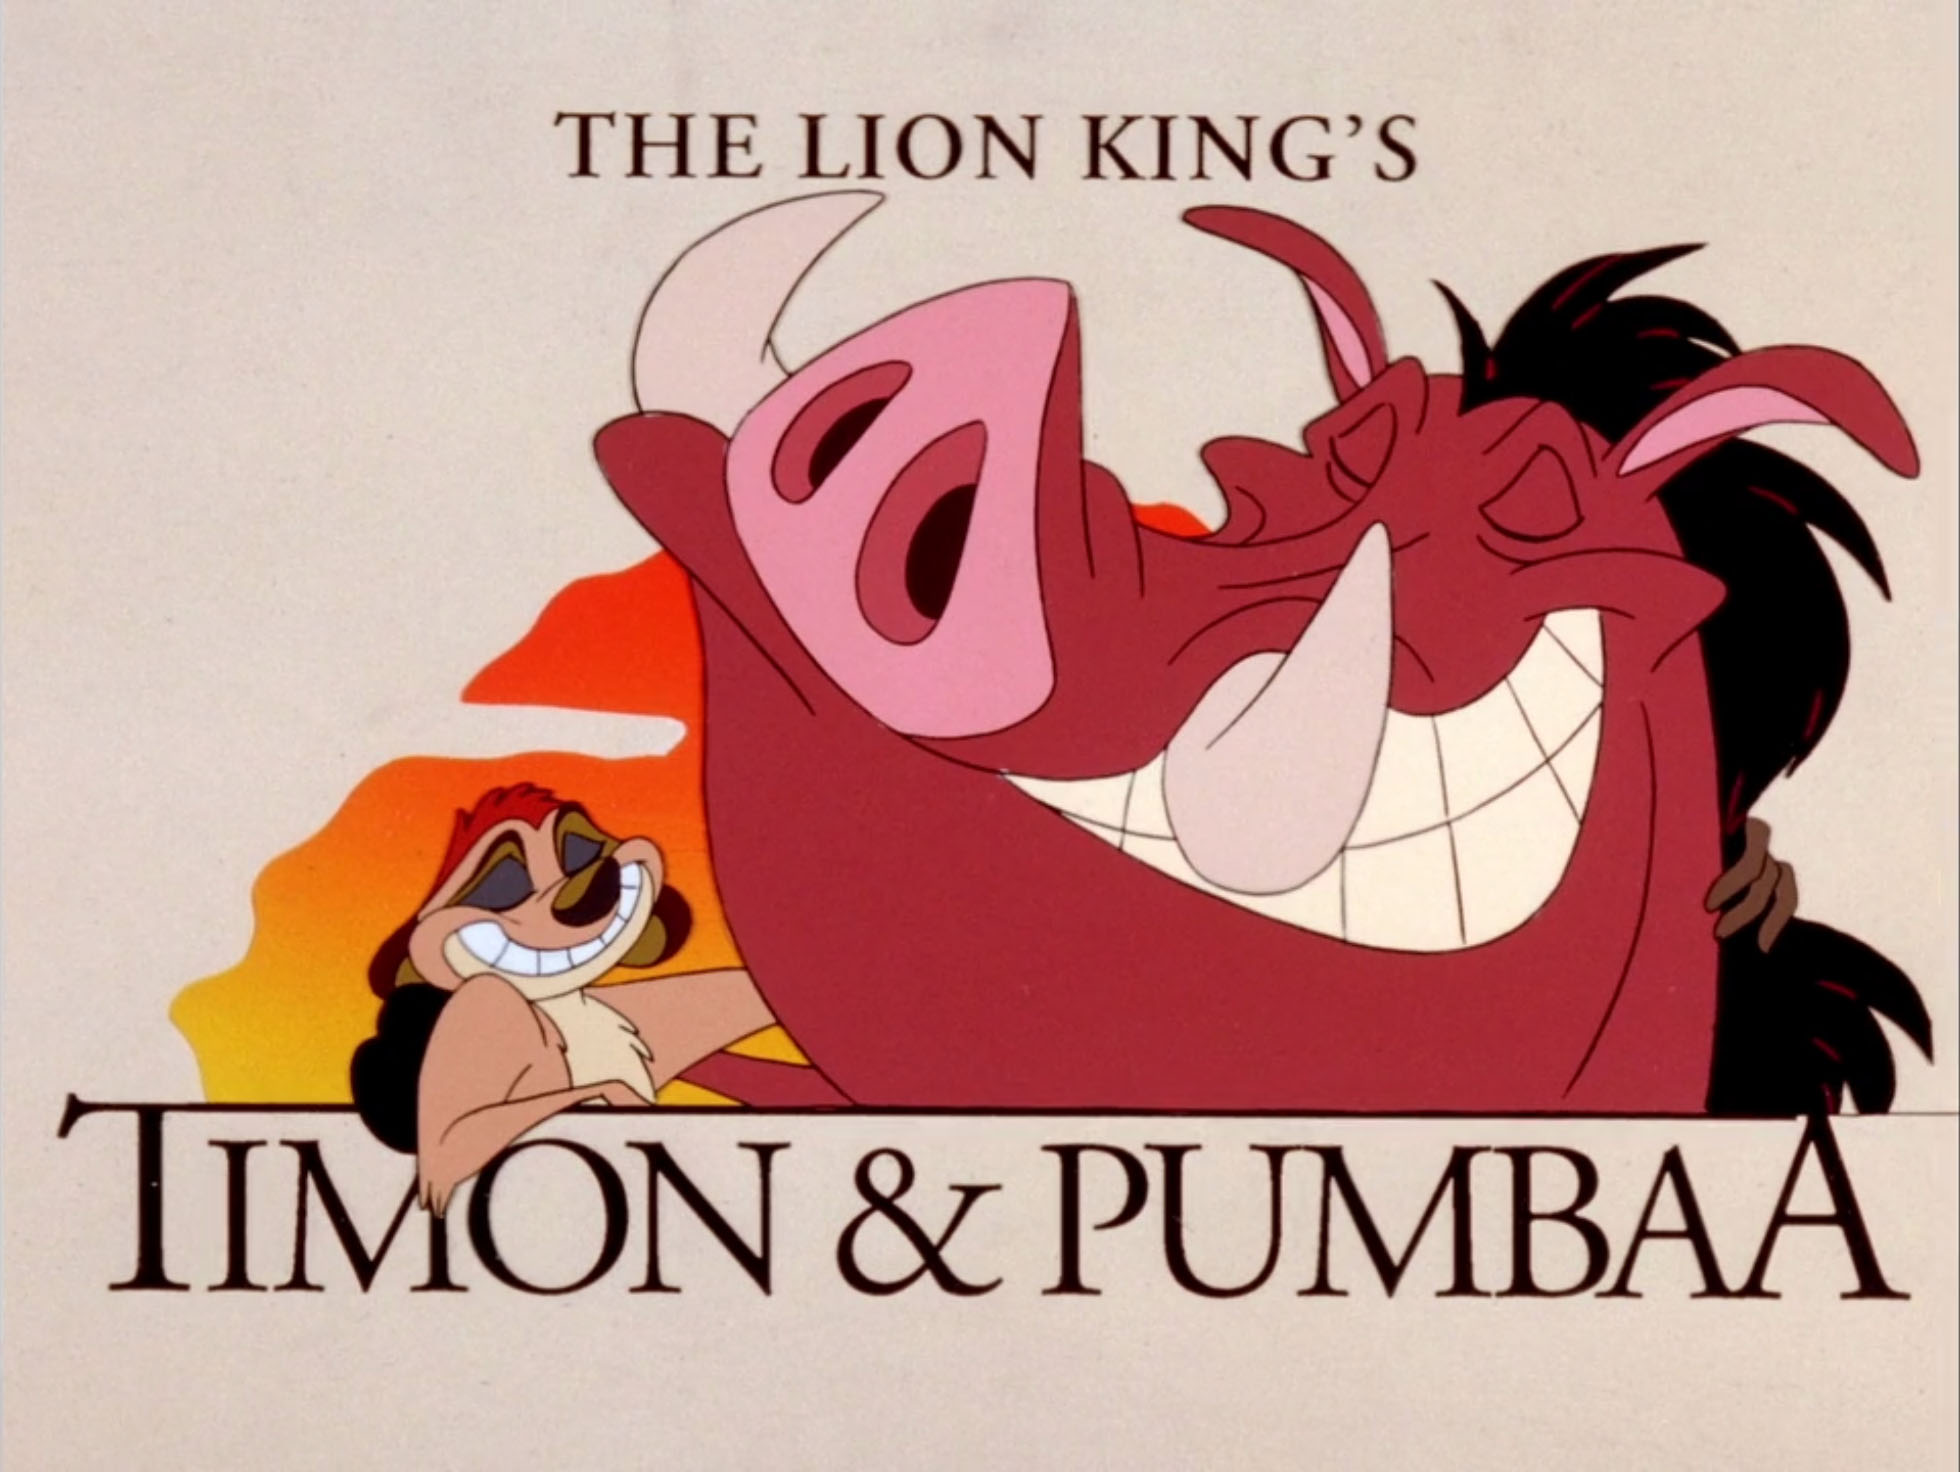 Billy eichner and seth rogen will reportedly voice timon and pumbaa in disneys disney,remake,found,timon